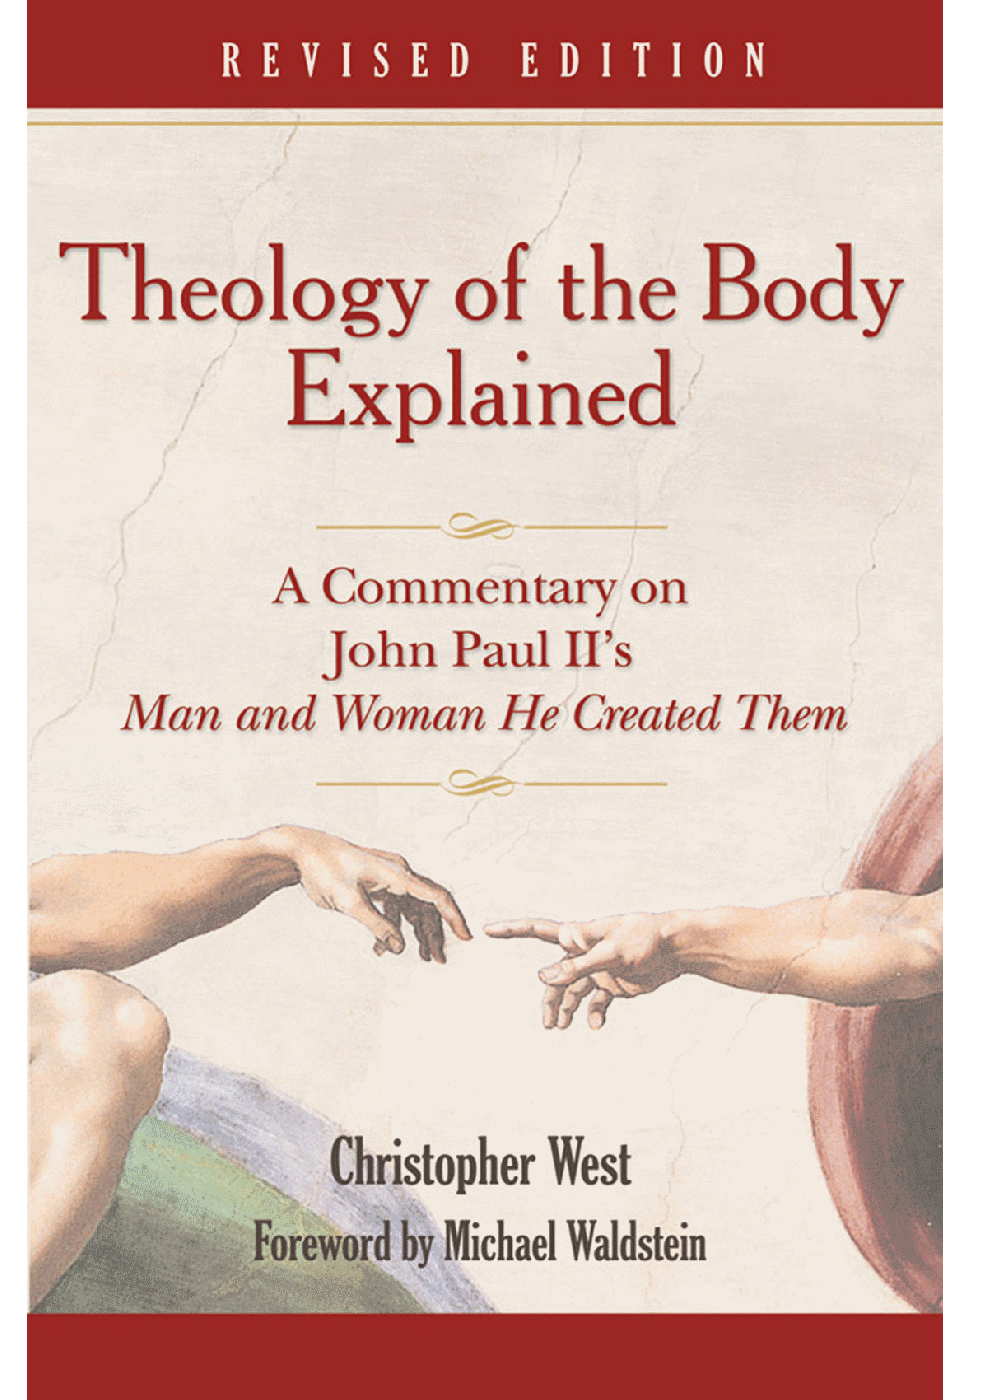 Symposium on JPII's Theology of the Body